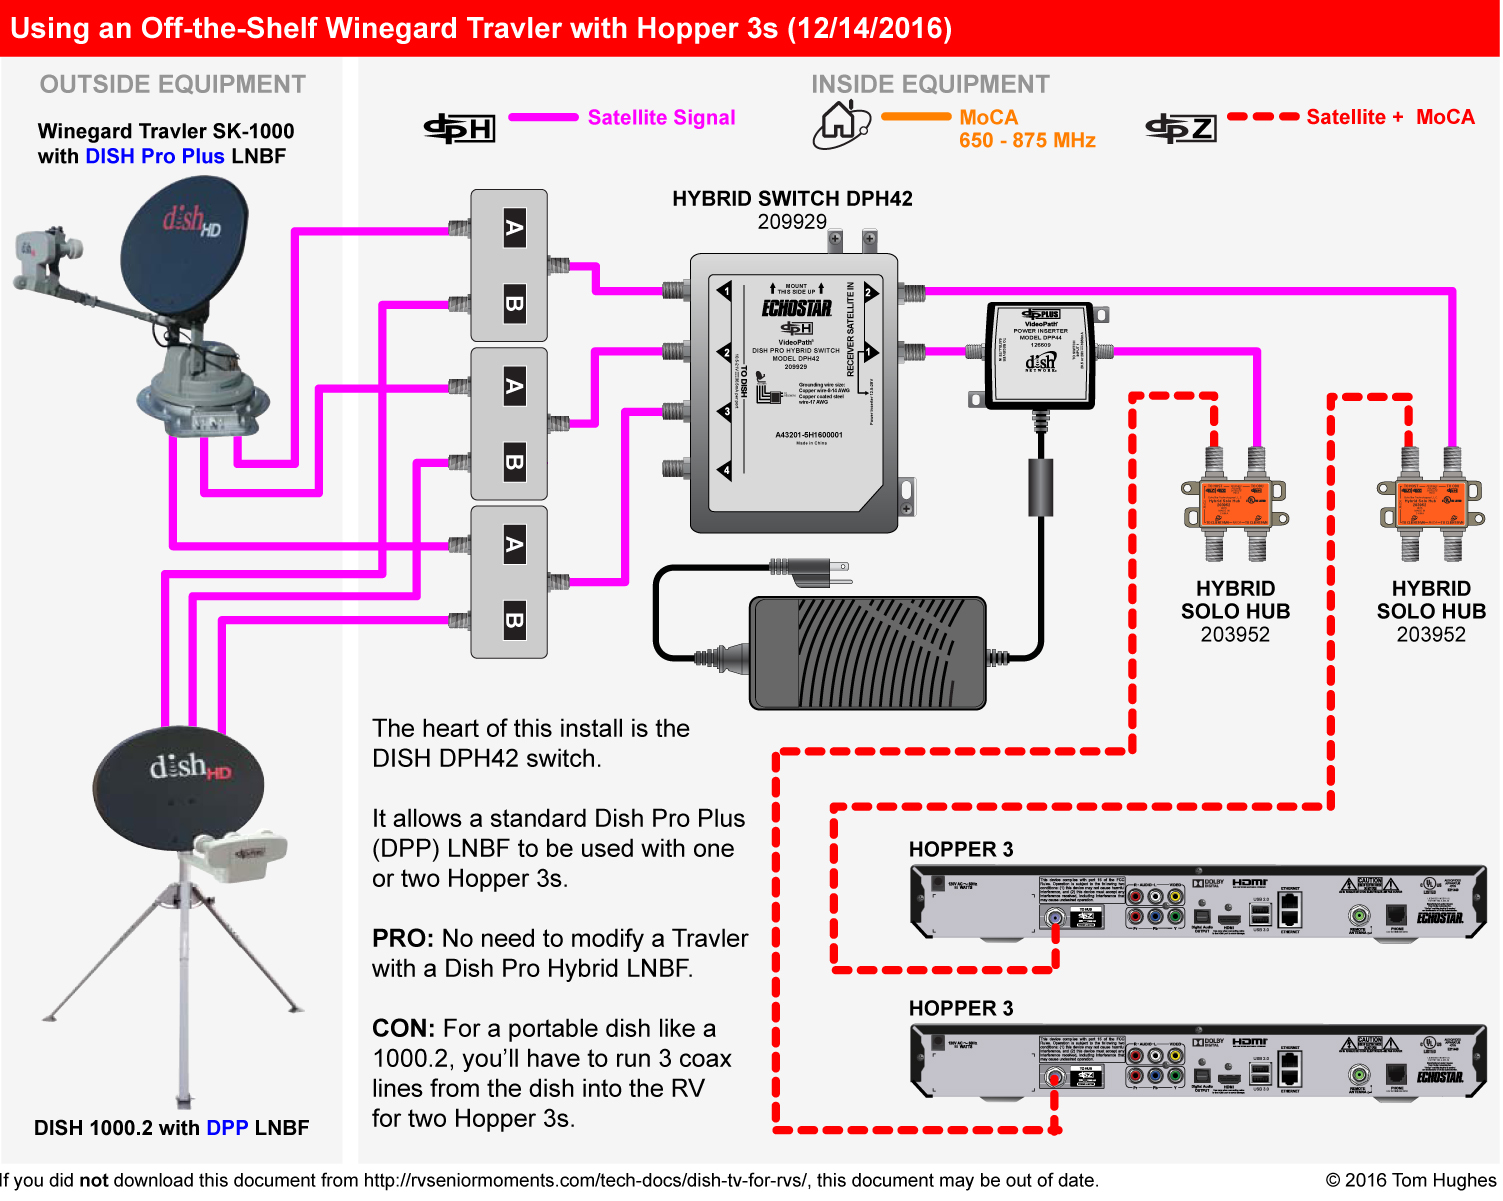 dph42_winegard travler_two_hopper3s?resize=665%2C531 dish hopper joey wiring  diagram hdmi dish network